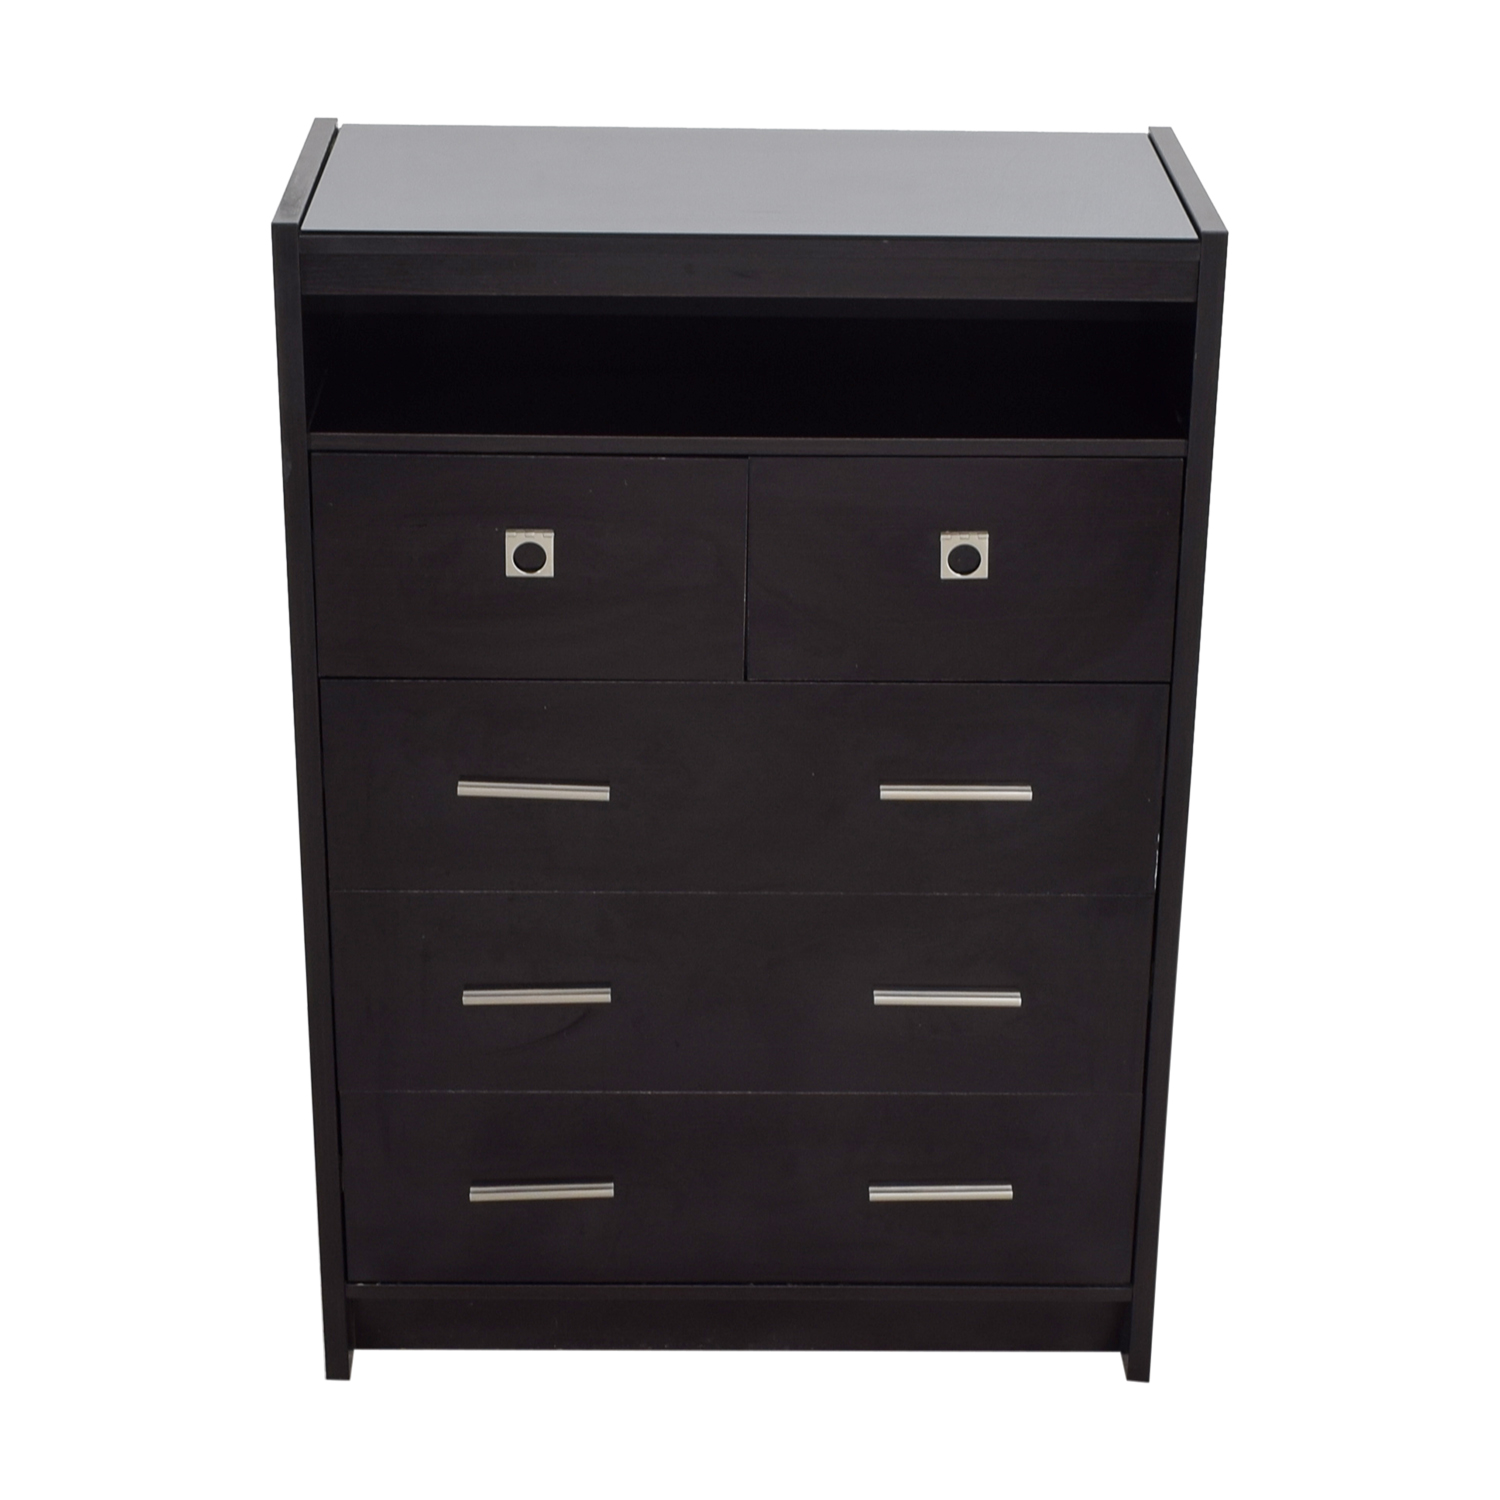 Raymour & Flanigan Black Five-Drawer Dresser sale